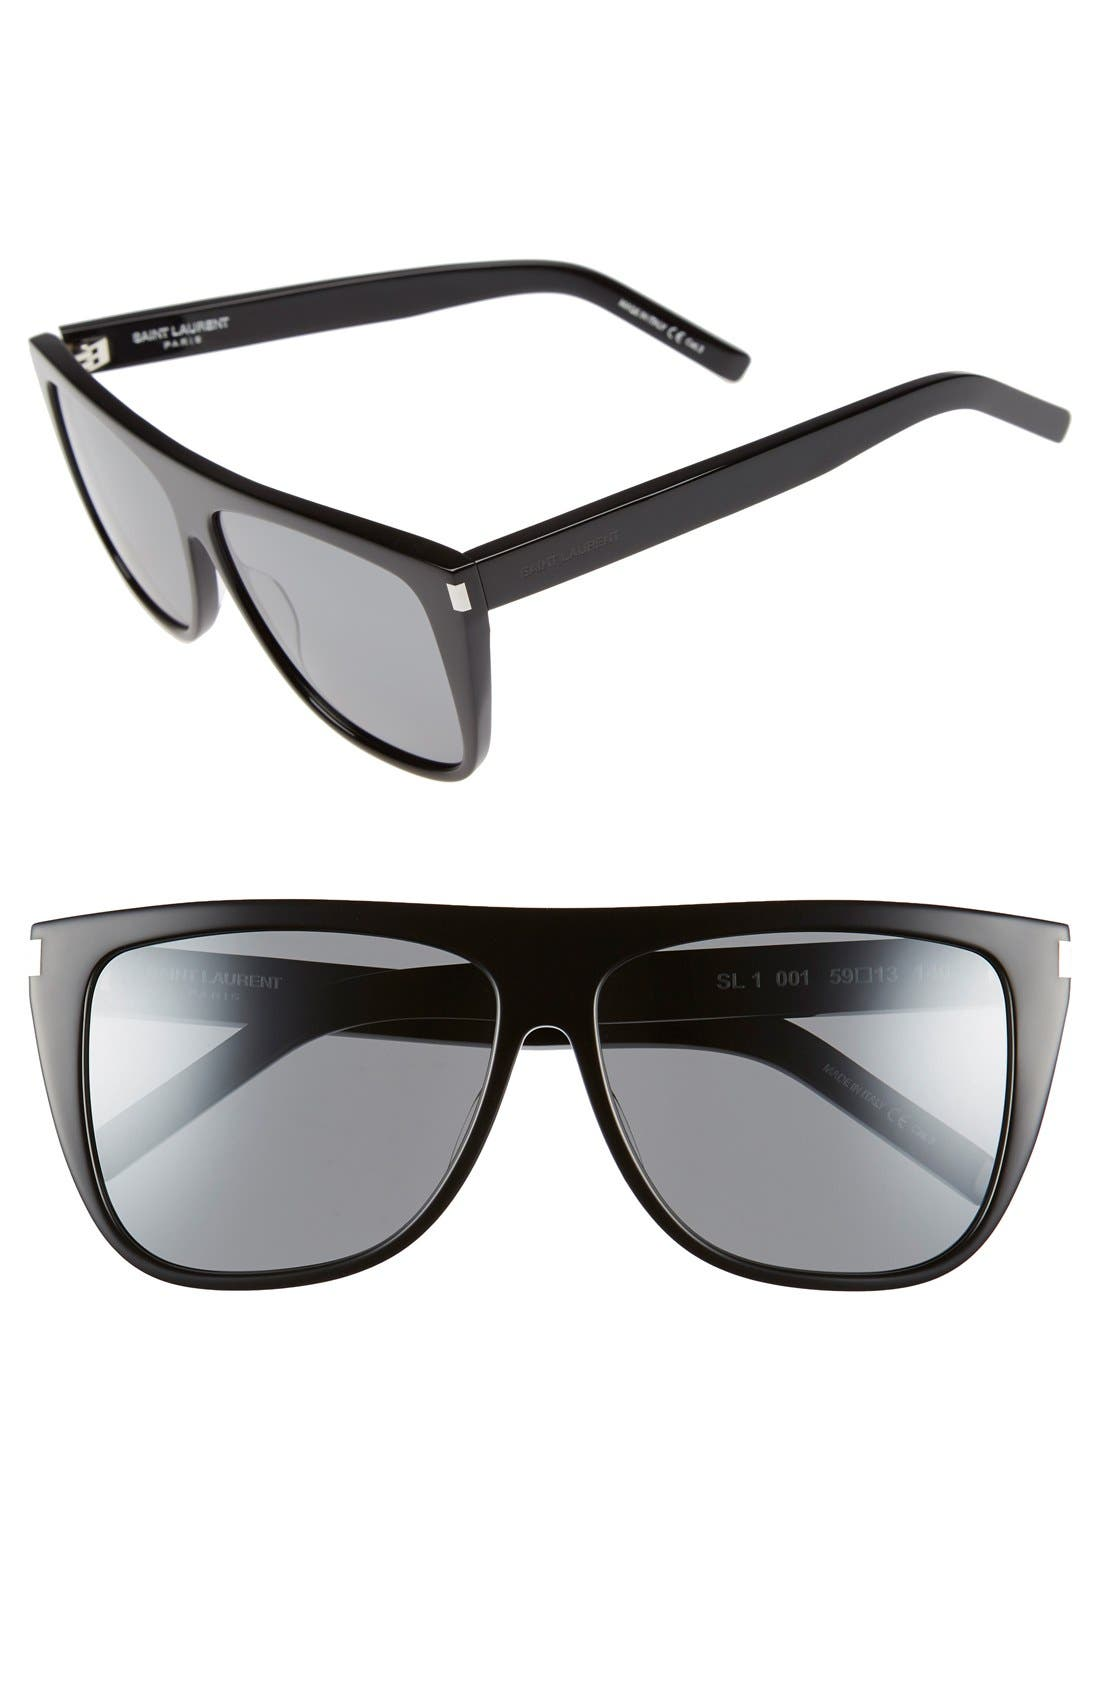 SAINT LAURENT, SL1 59mm Flat Top Sunglasses, Main thumbnail 1, color, BLACK/ SILVER